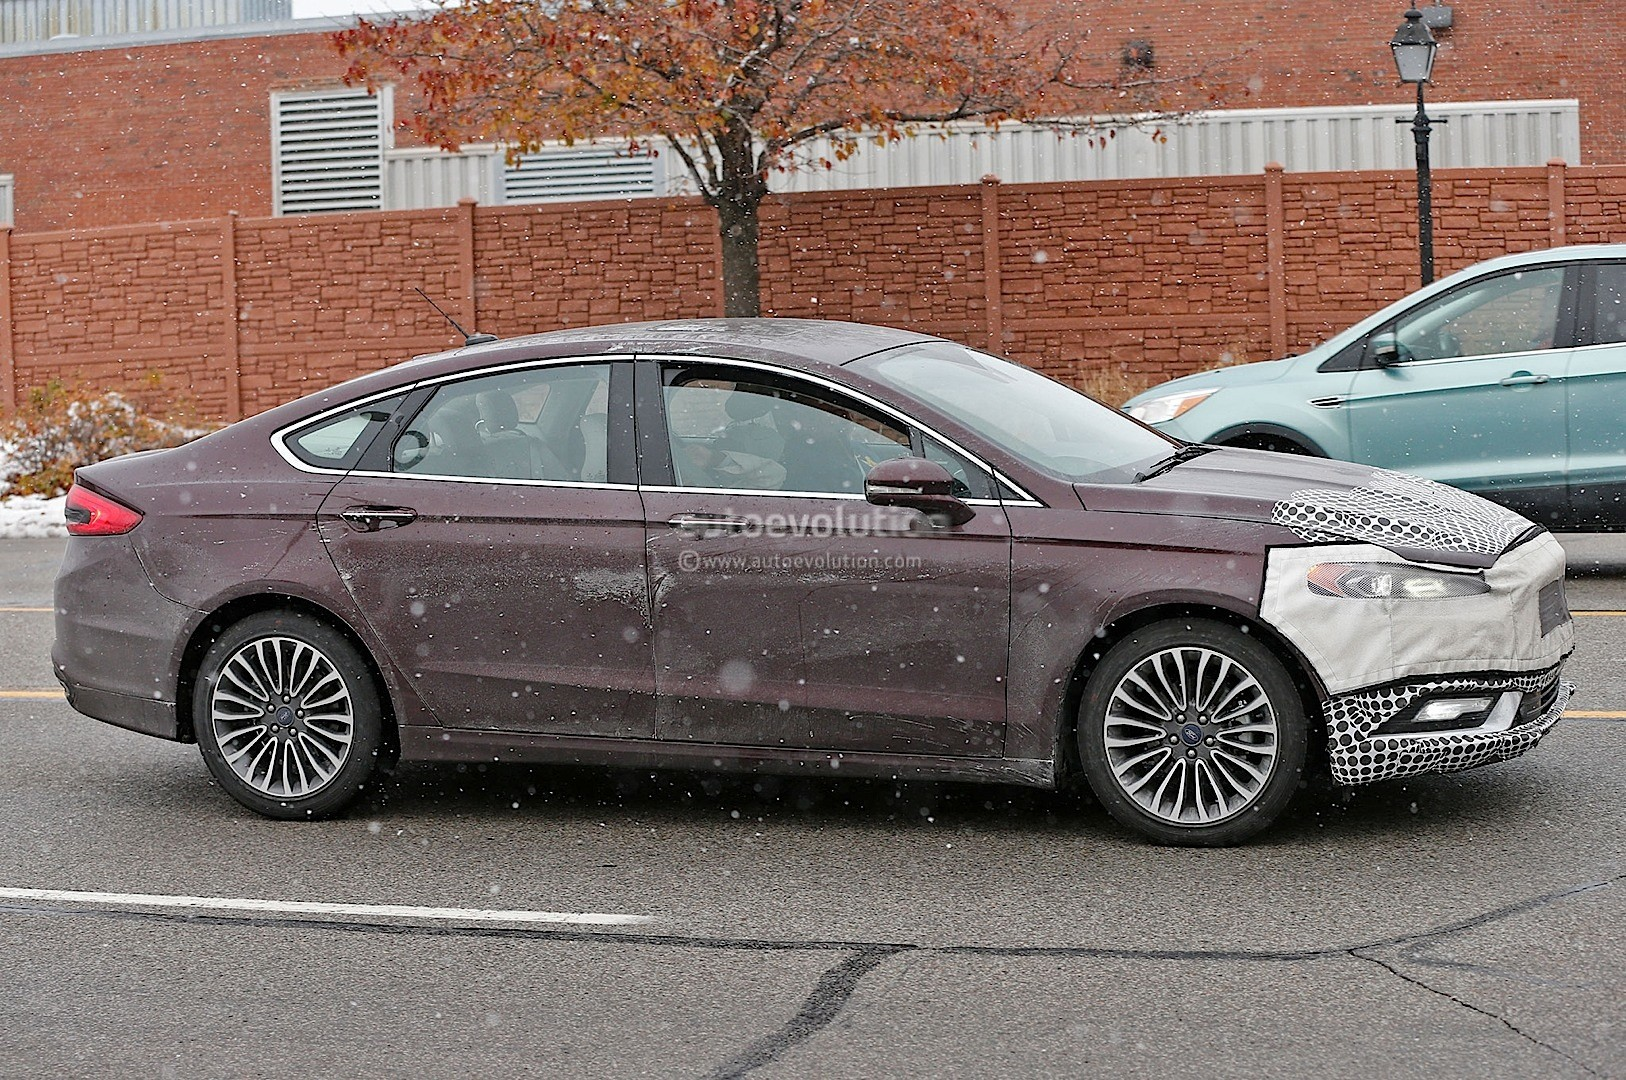 58 New Spy Shots Ford Fusion Configurations